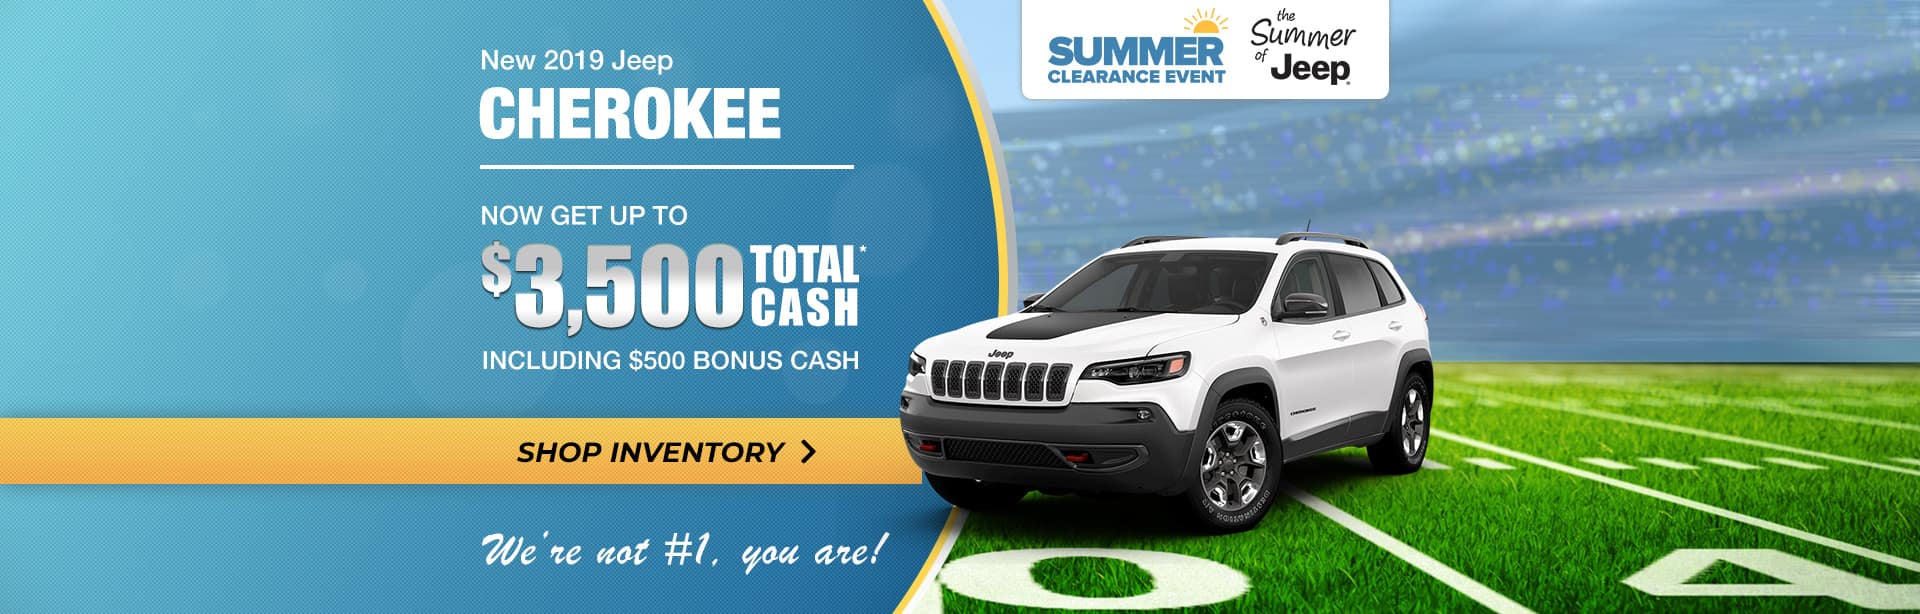 2019 Jeep Cherokee Summer Special in Crawfordsville, Indiana.